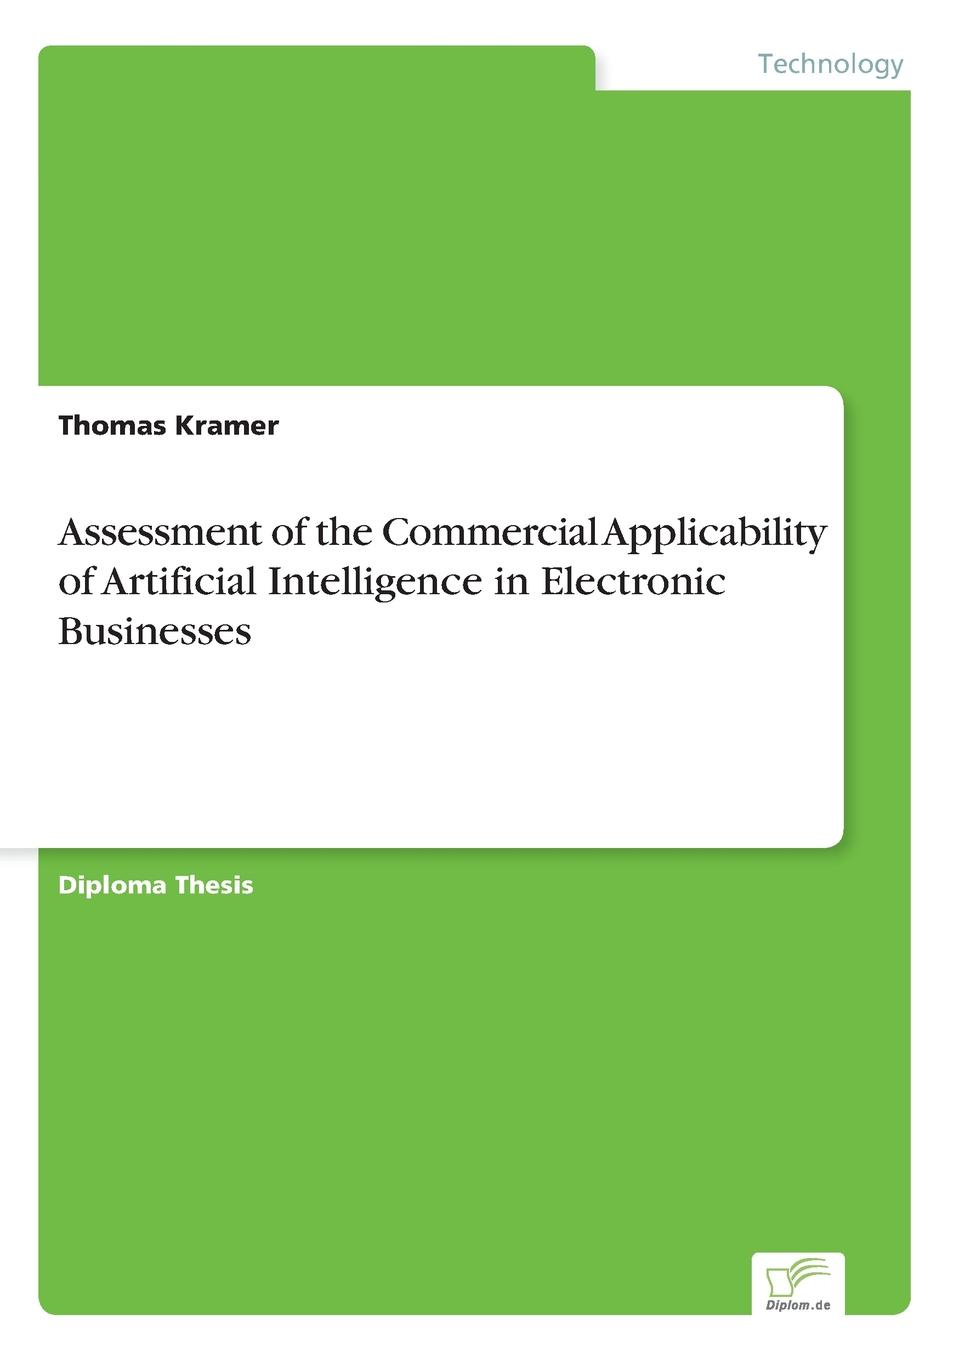 Thomas Kramer Assessment of the Commercial Applicability of Artificial Intelligence in Electronic Businesses an advanced introduction to artificial intelligence